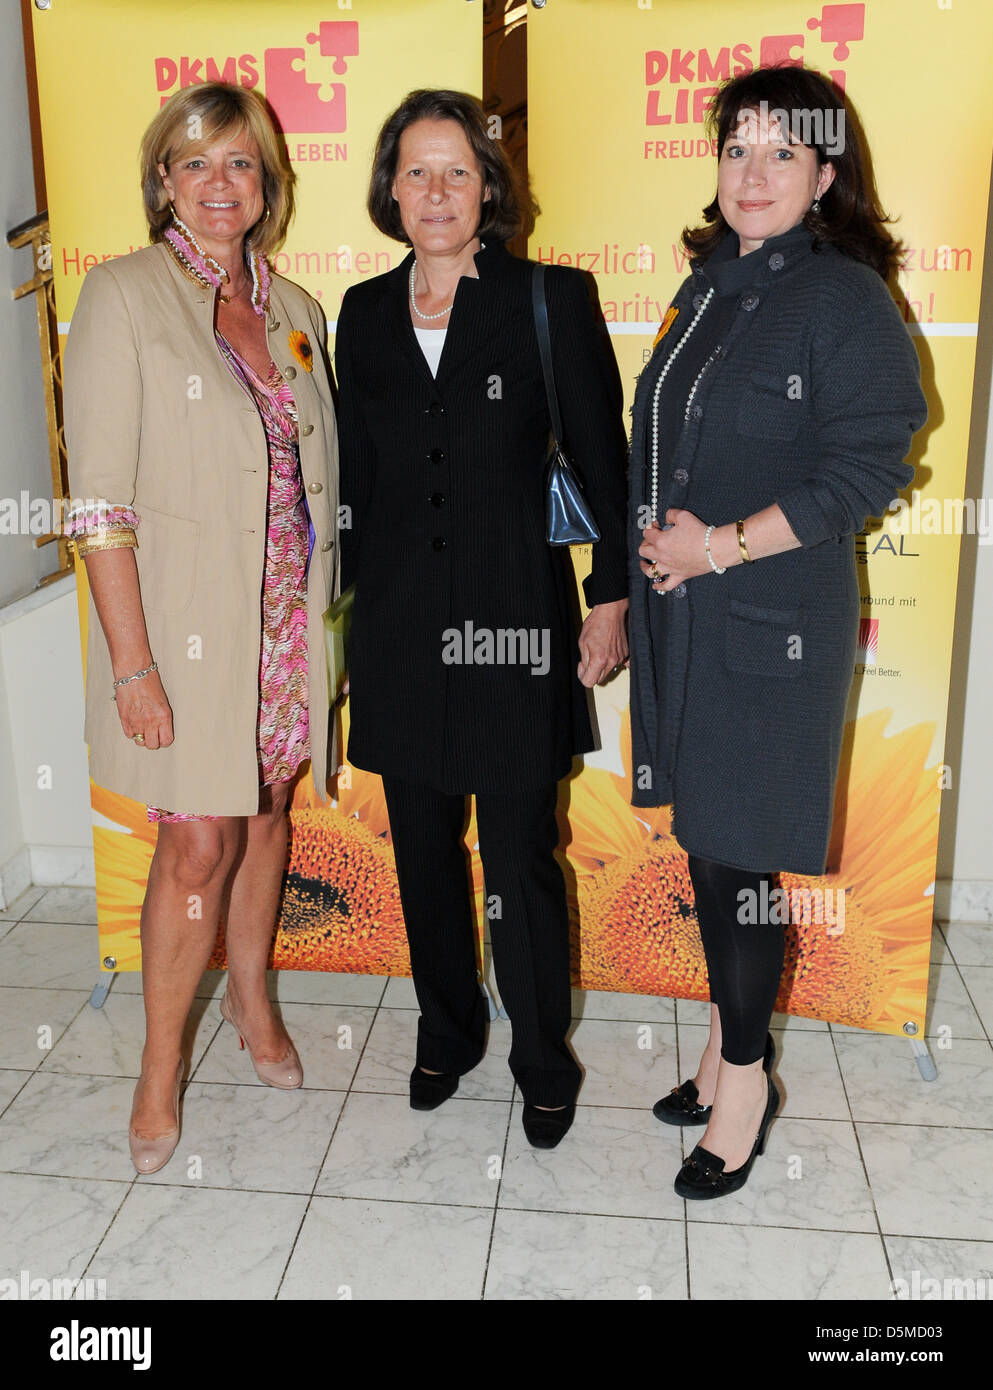 Claudia Rutt and Christina Rau and guest at the DKMS Ladies Lunch at Hotel Alliance. Berlin, Germany Stock Photo